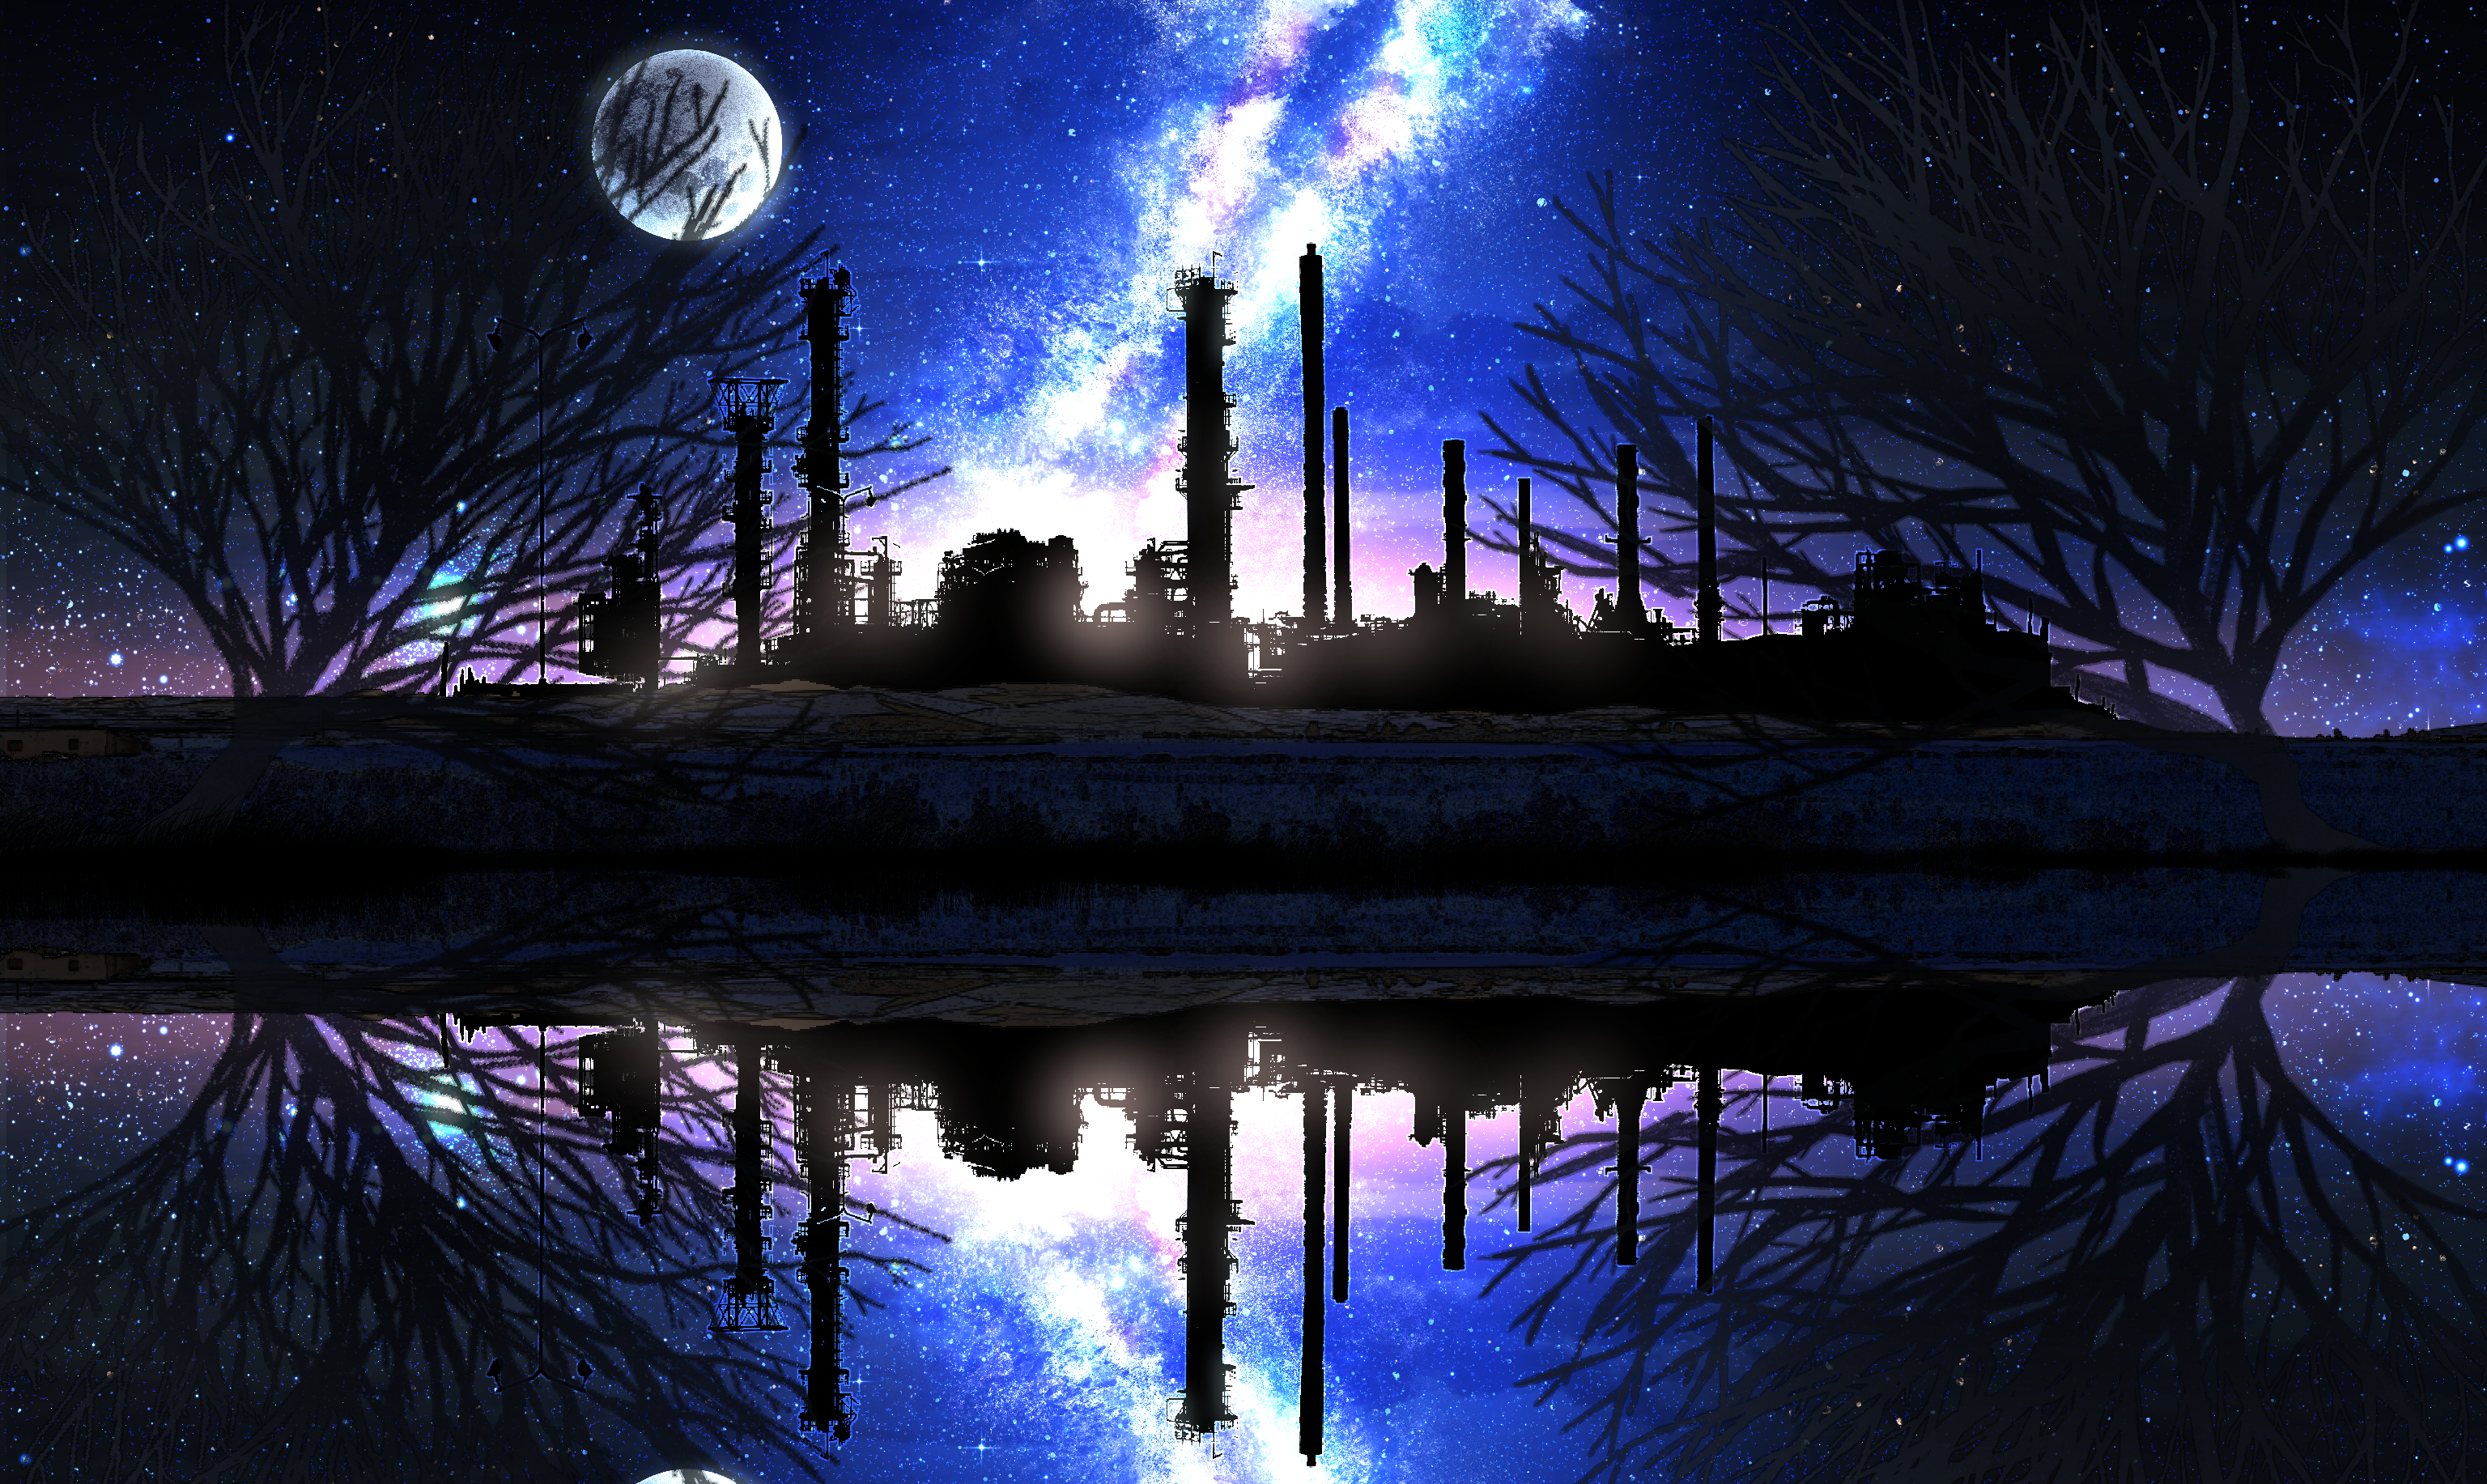 Factory Lake Moon Reflection Starry Sky 3072x1833